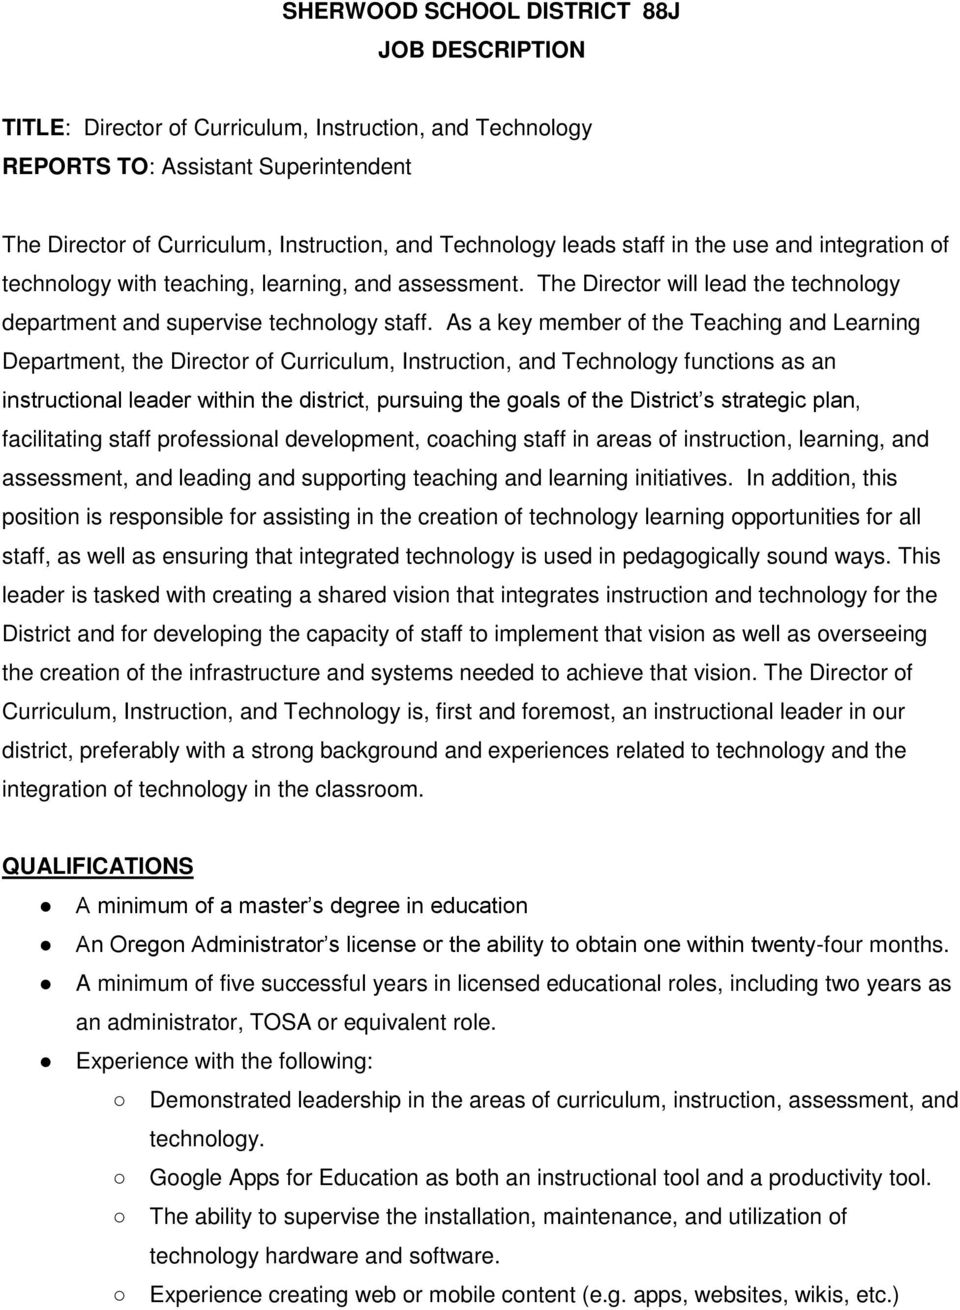 As a key member of the Teaching and Learning Department, the Director of Curriculum, Instruction, and Technology functions as an instructional leader within the district, pursuing the goals of the